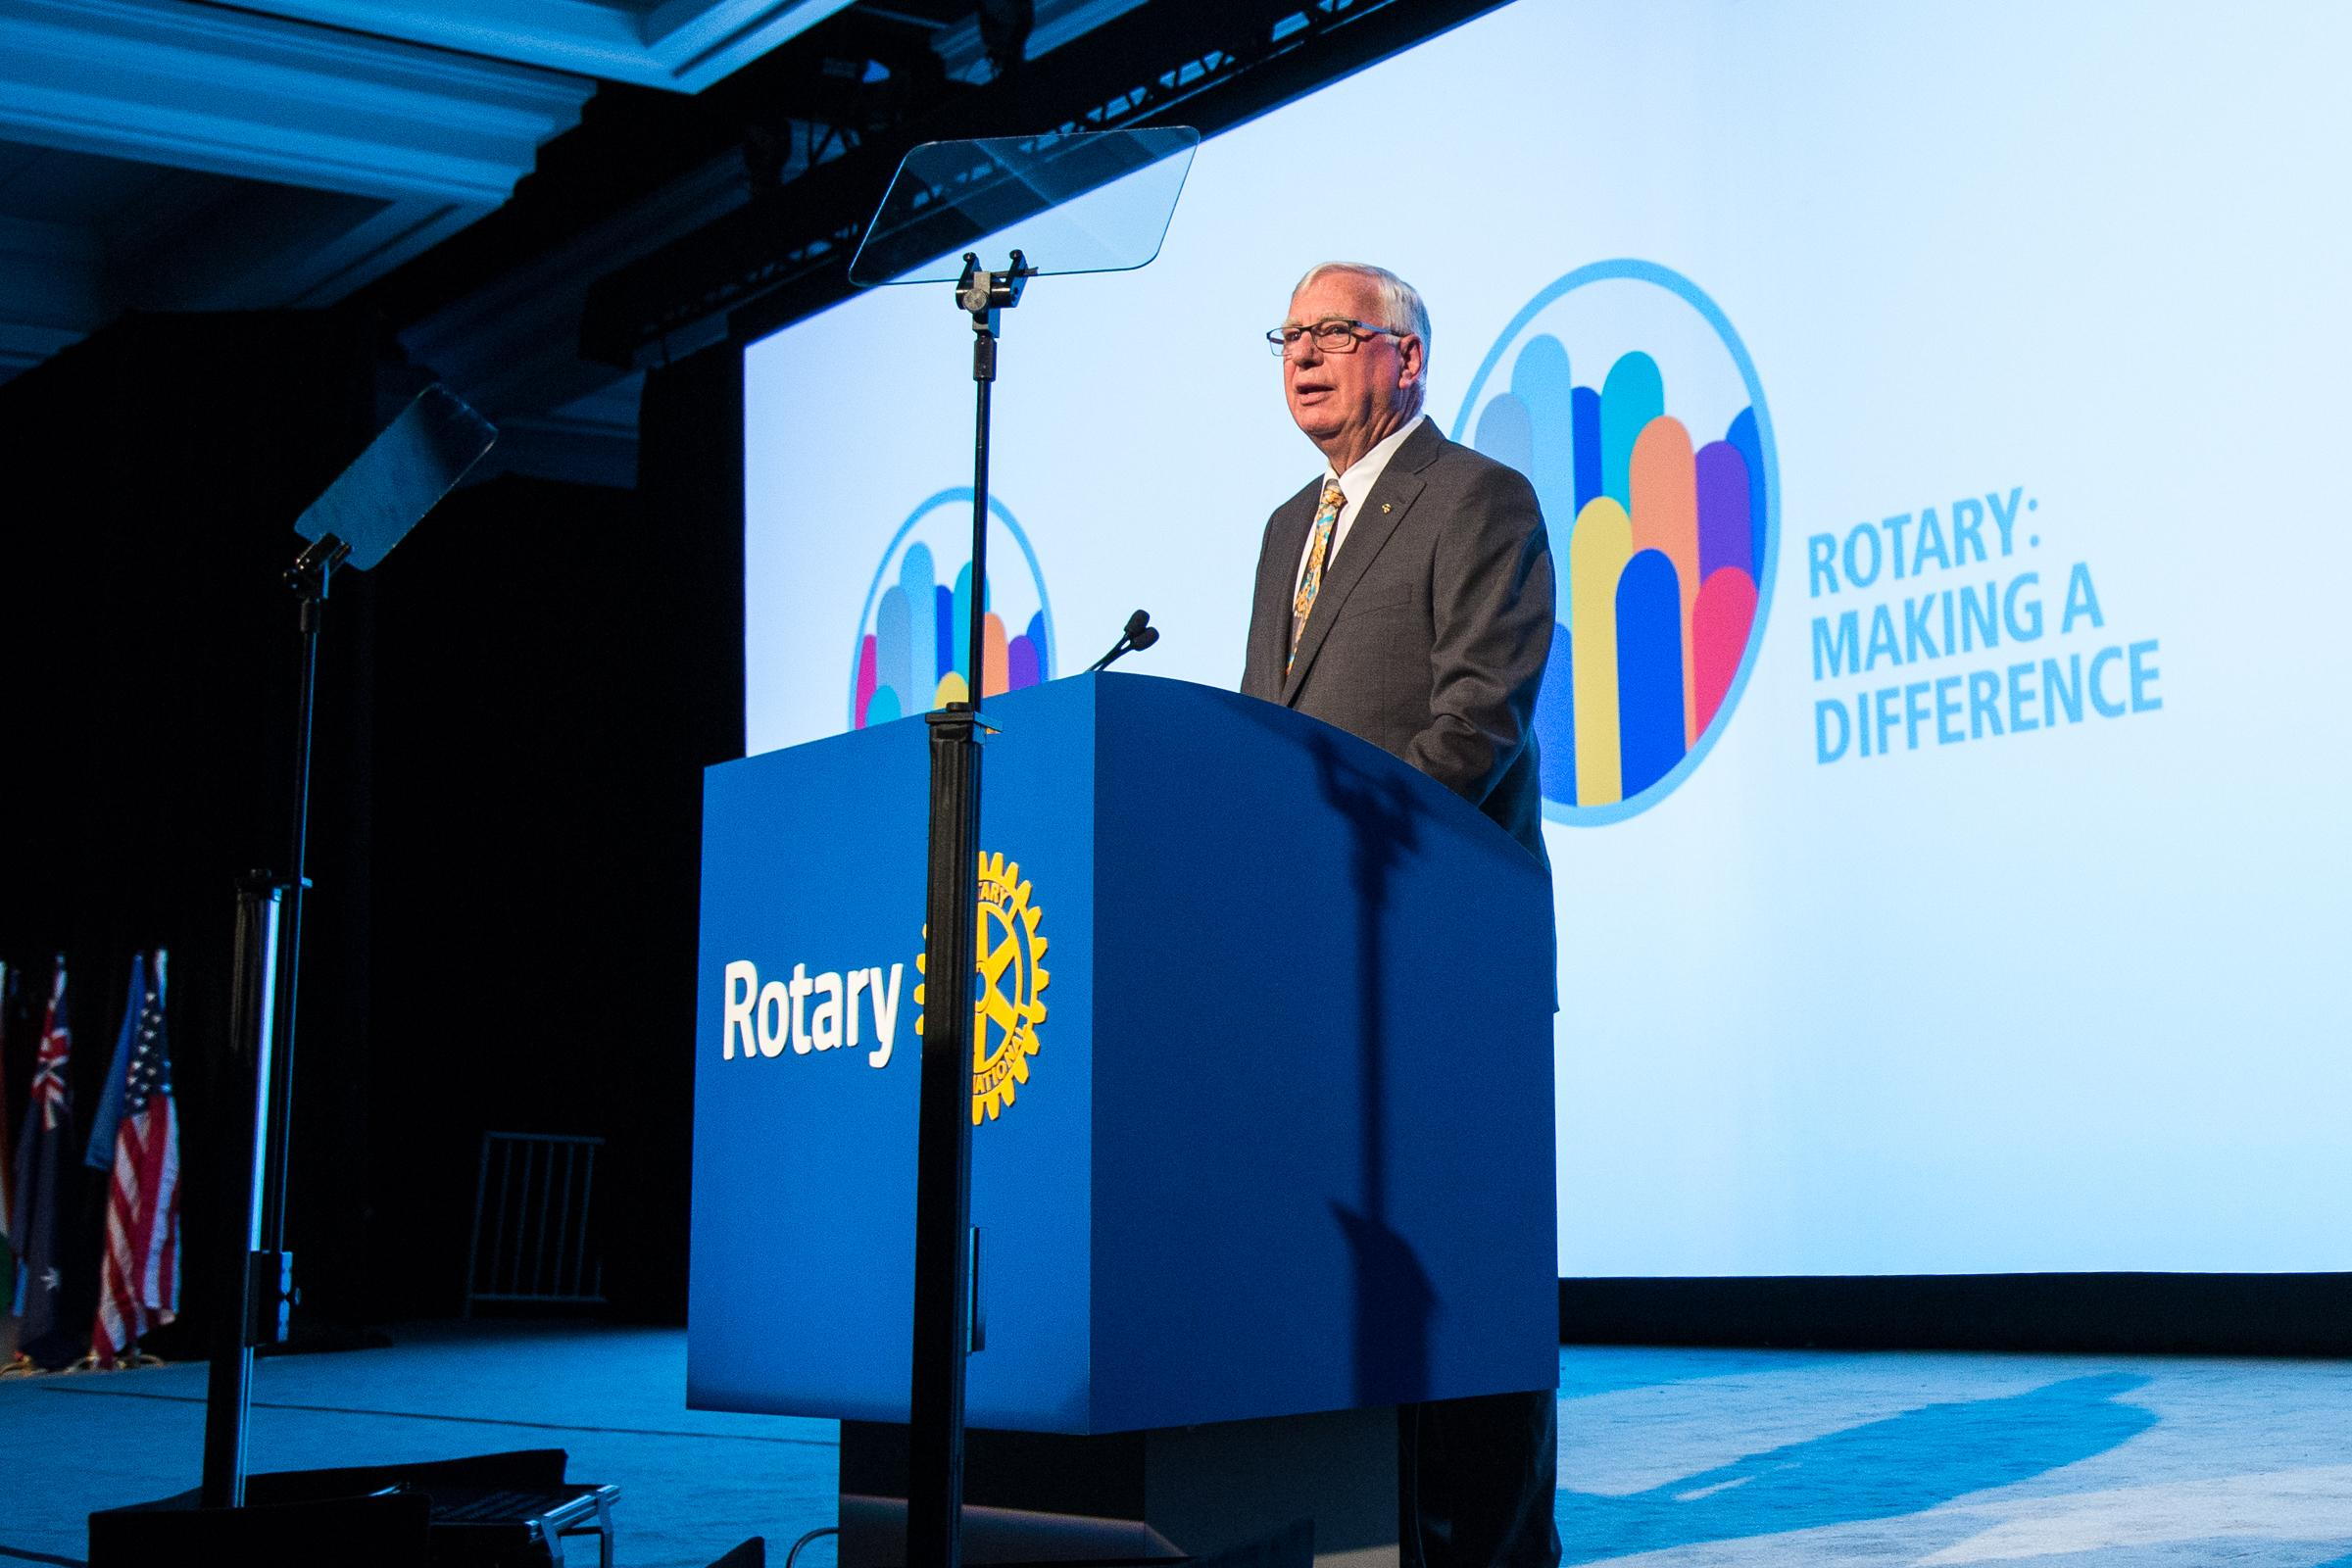 2017-18 RI President Ian H.S. Riseley announces his presidential theme, Rotary: Making a Difference